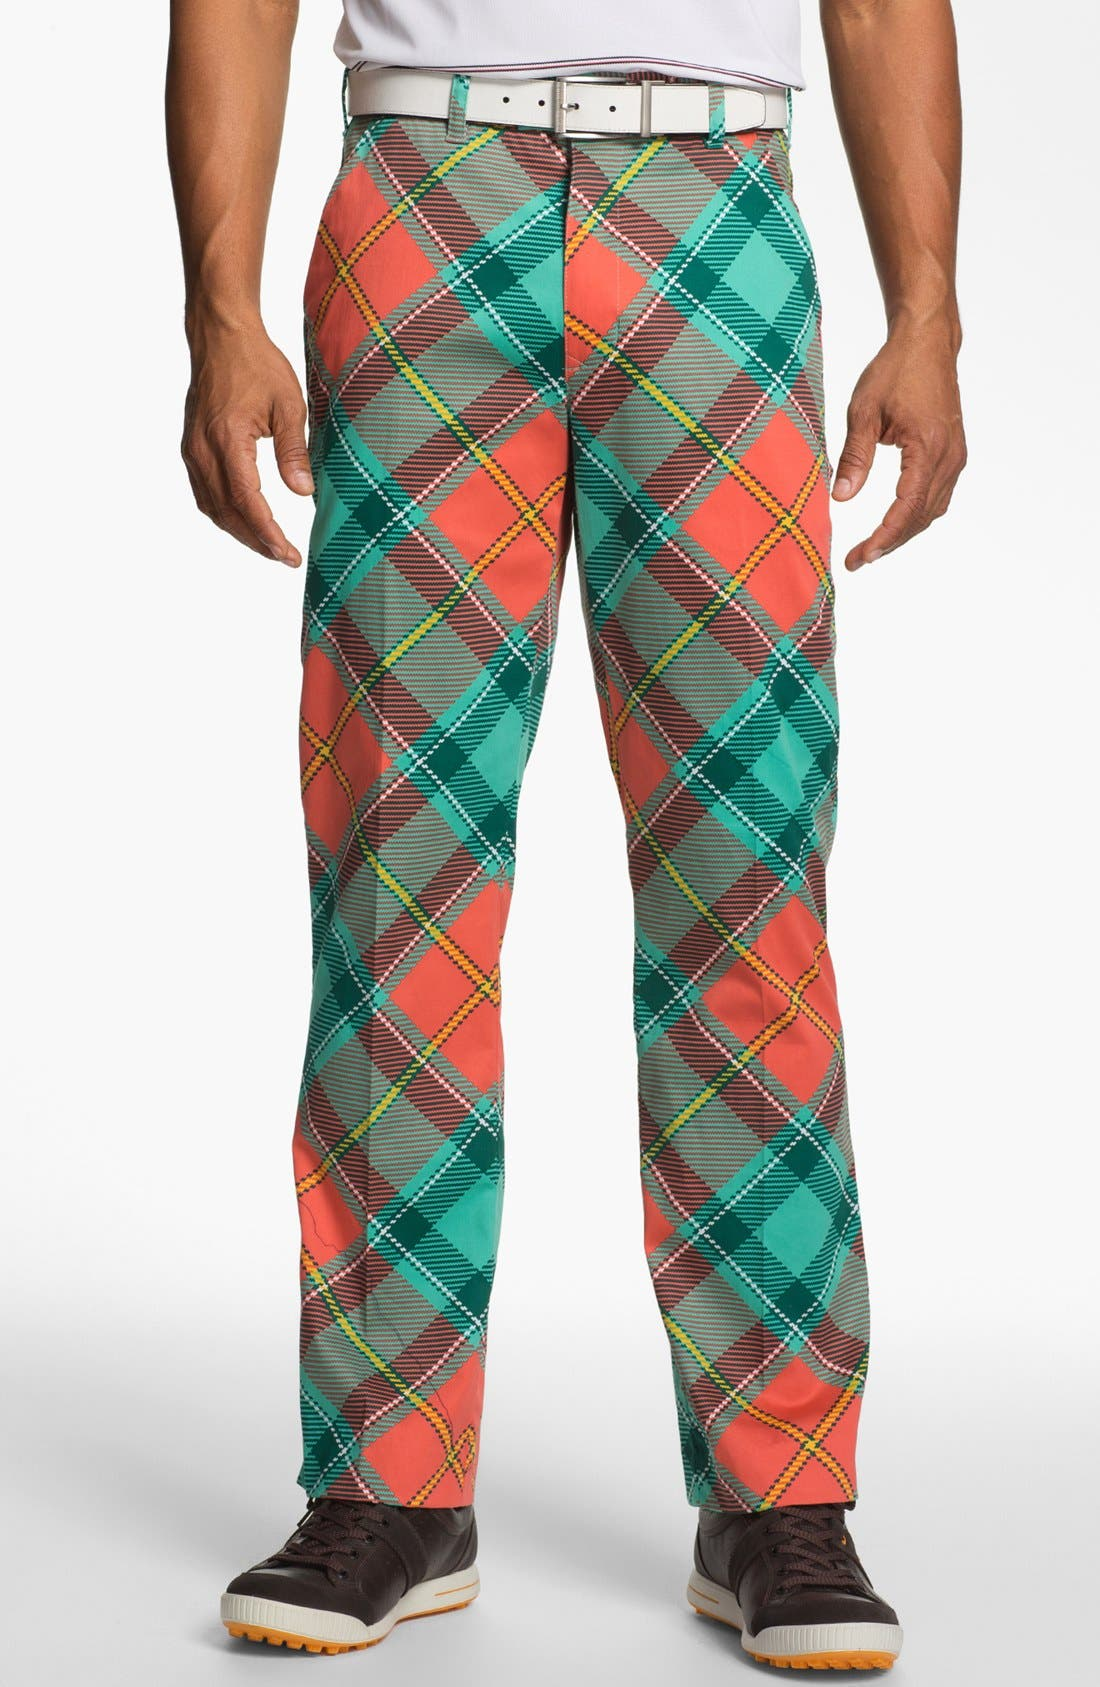 Alternate Image 1 Selected - Loudmouth Golf 'Just Peachy' Golf Pants